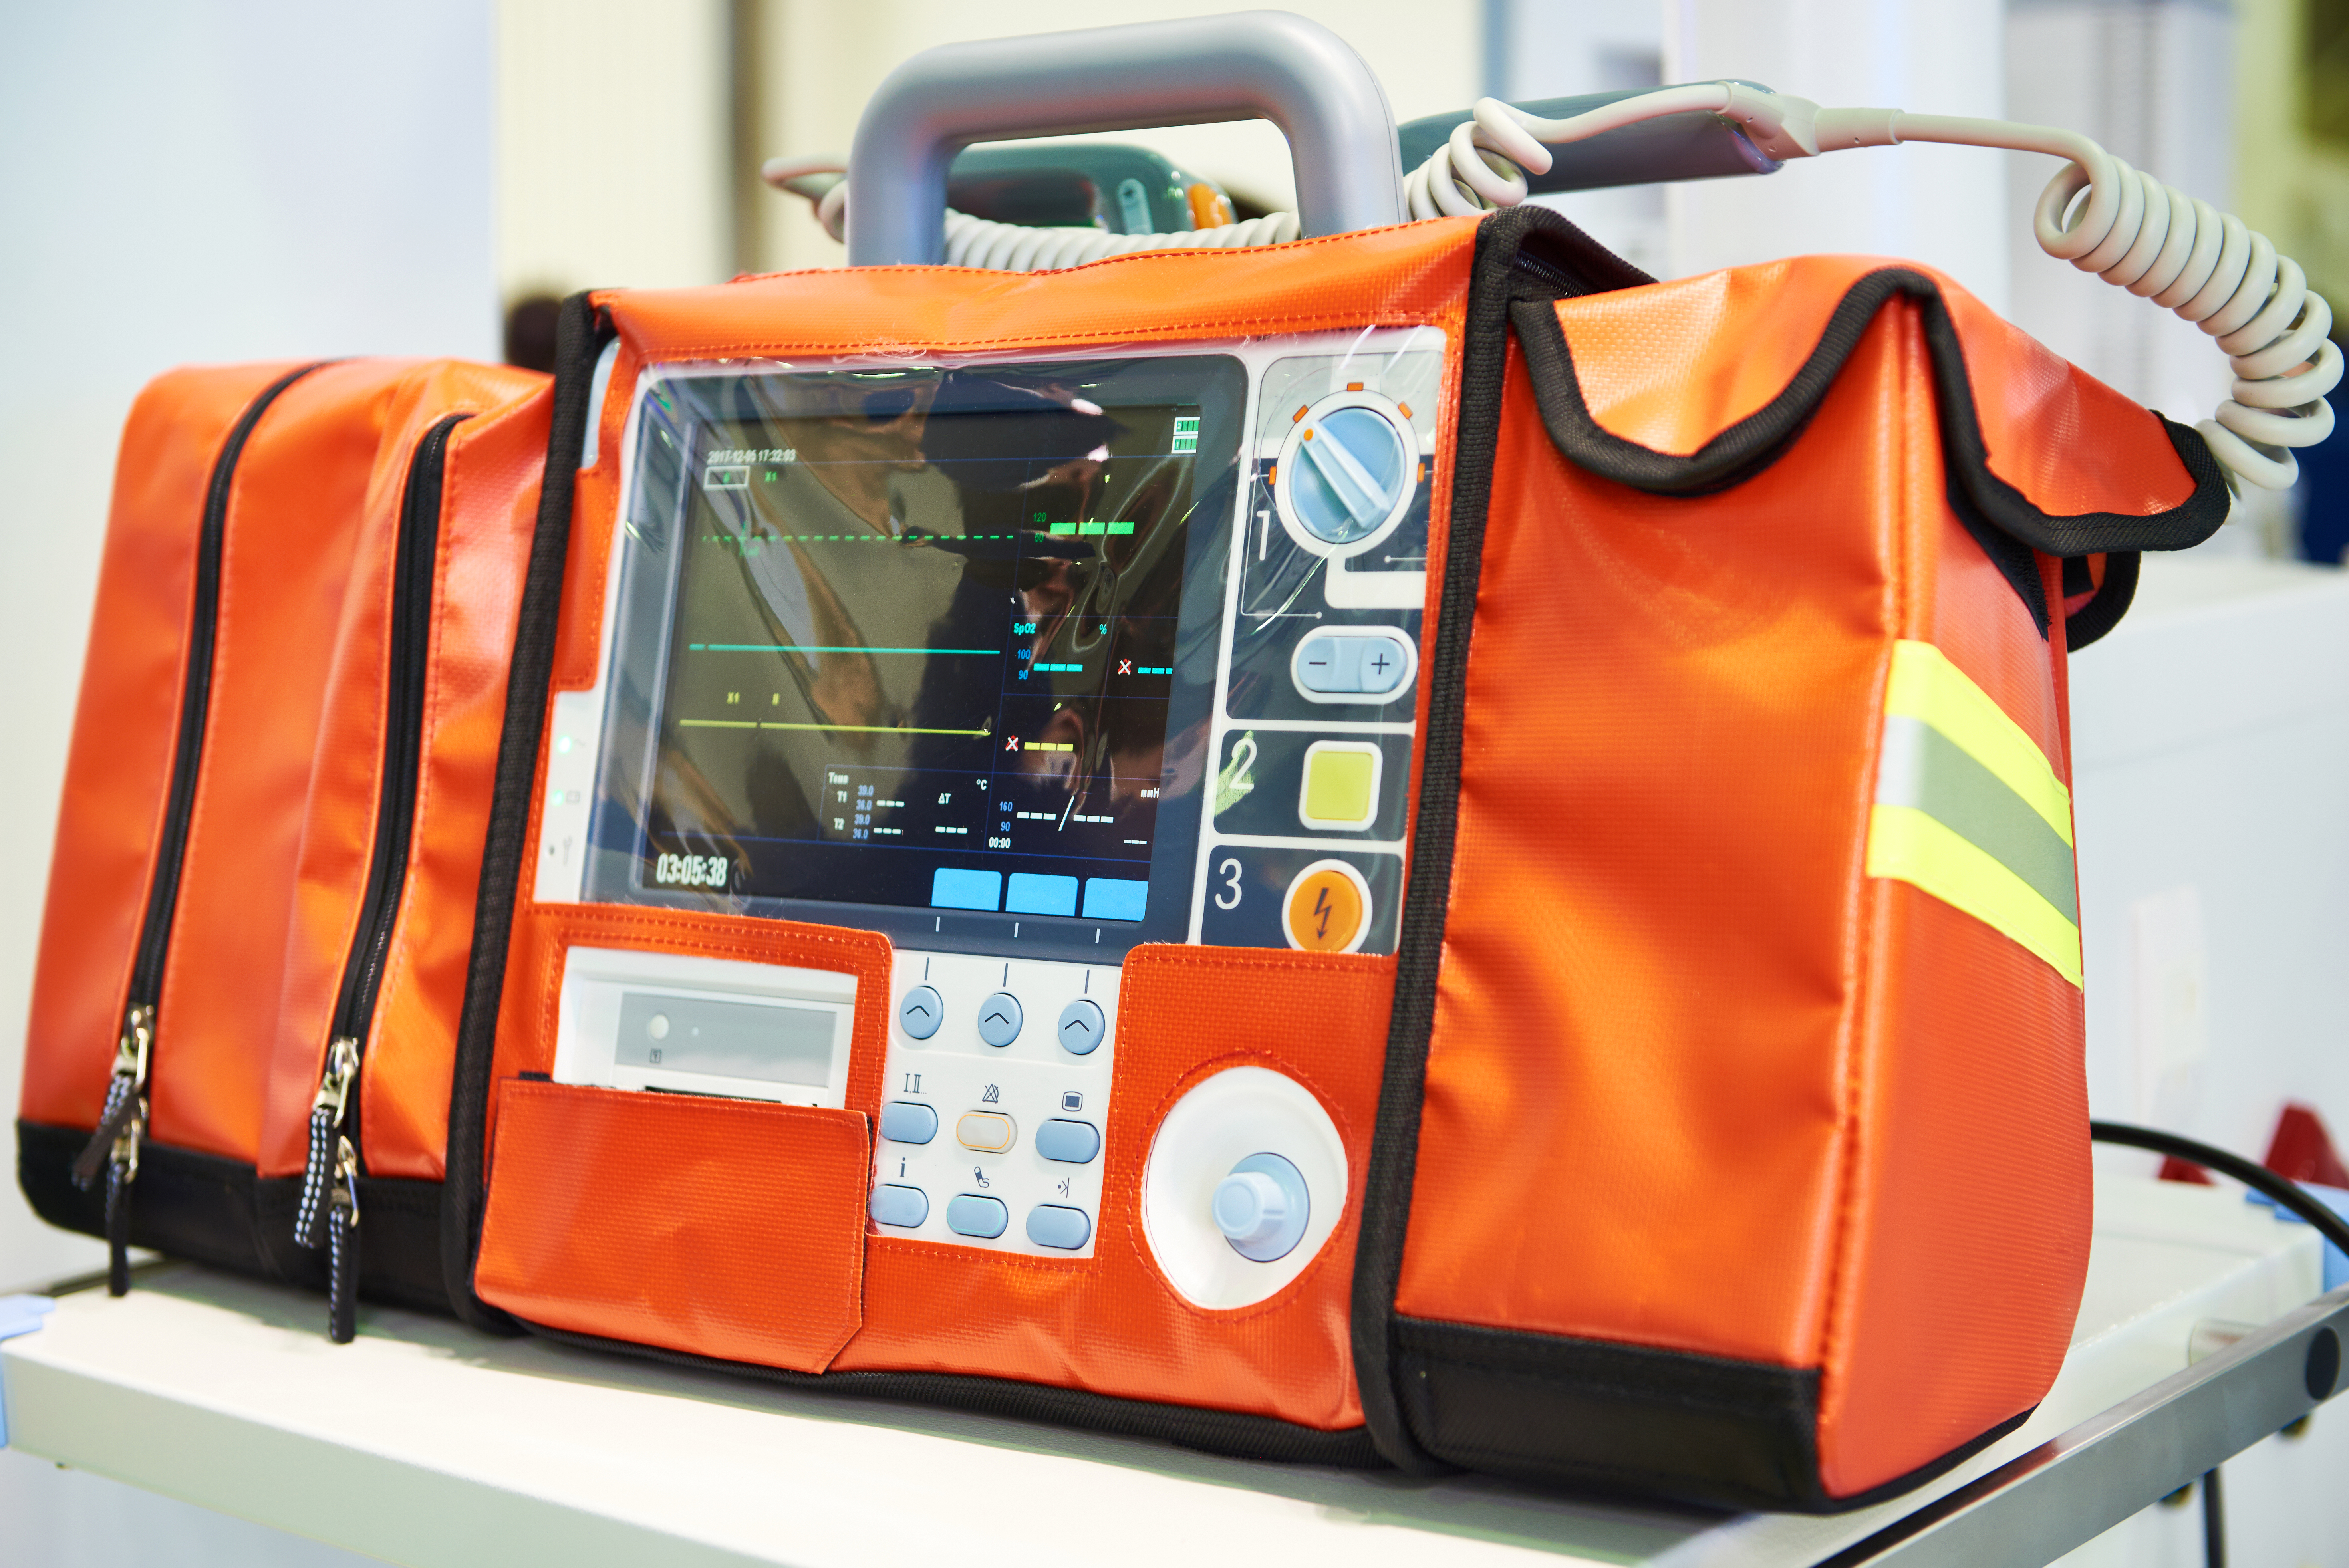 emergency room defibrillator